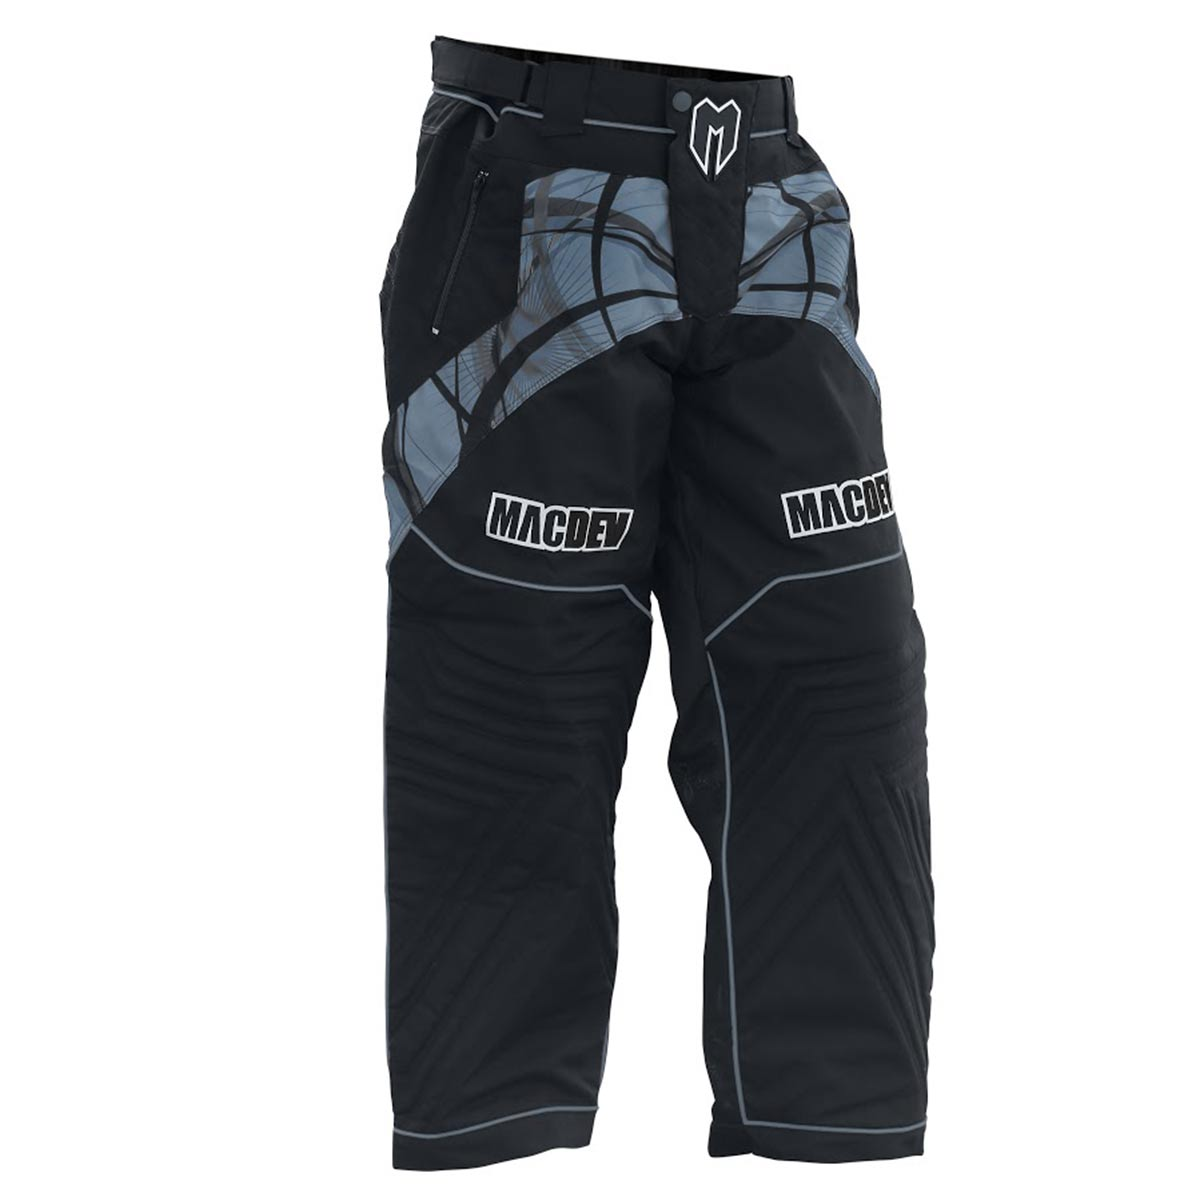 MacDev Paintball Pants - Grey/Black - Small